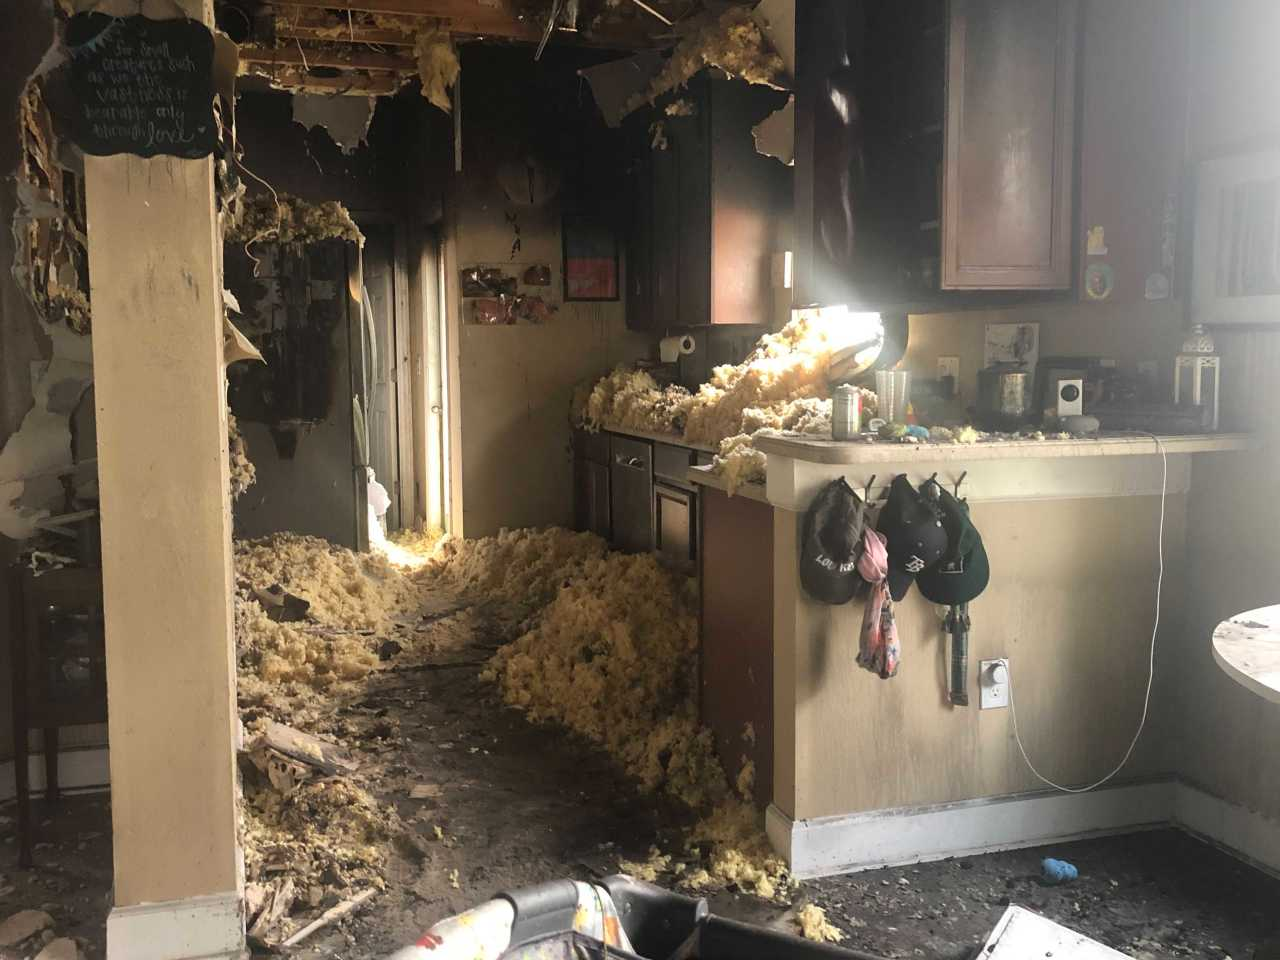 34-year-old cancer patient loses home to fire